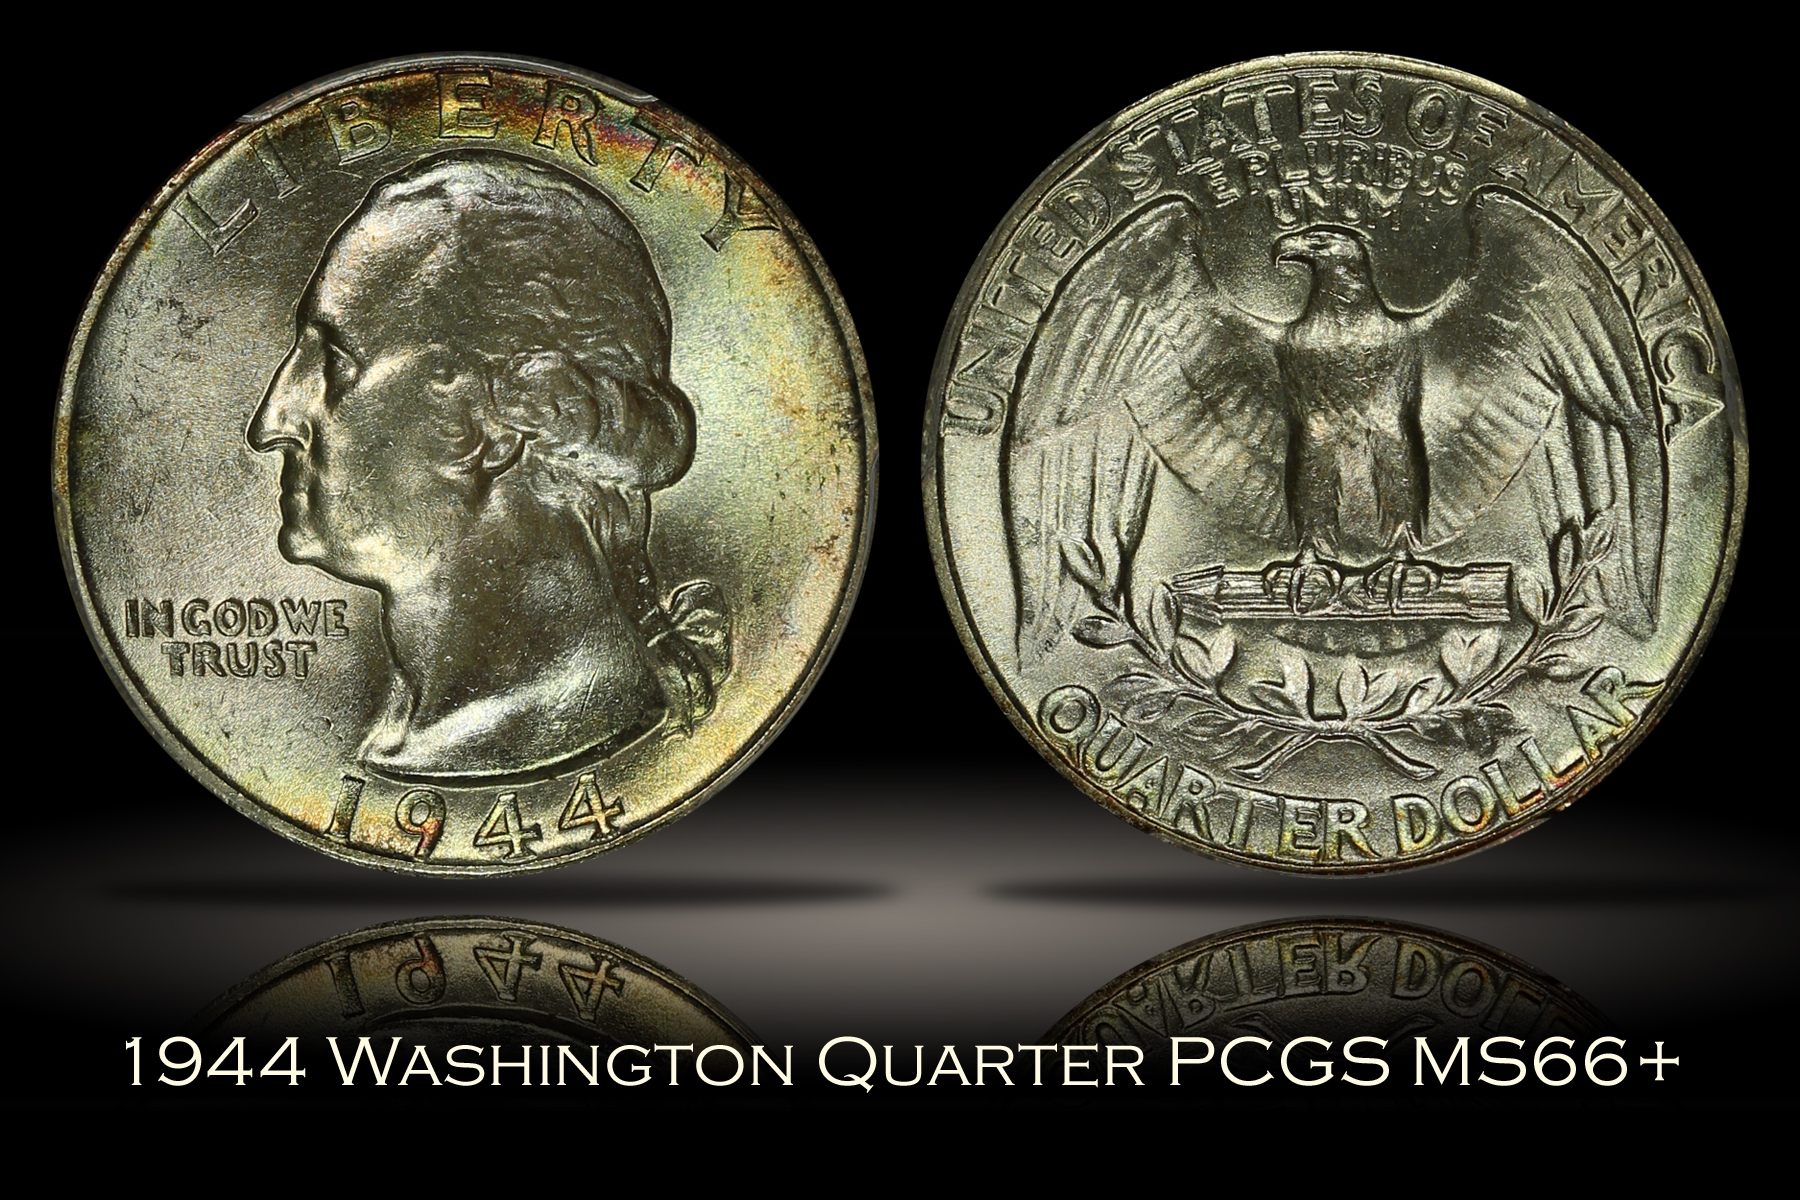 1944 Washington Quarter PCGS MS66+